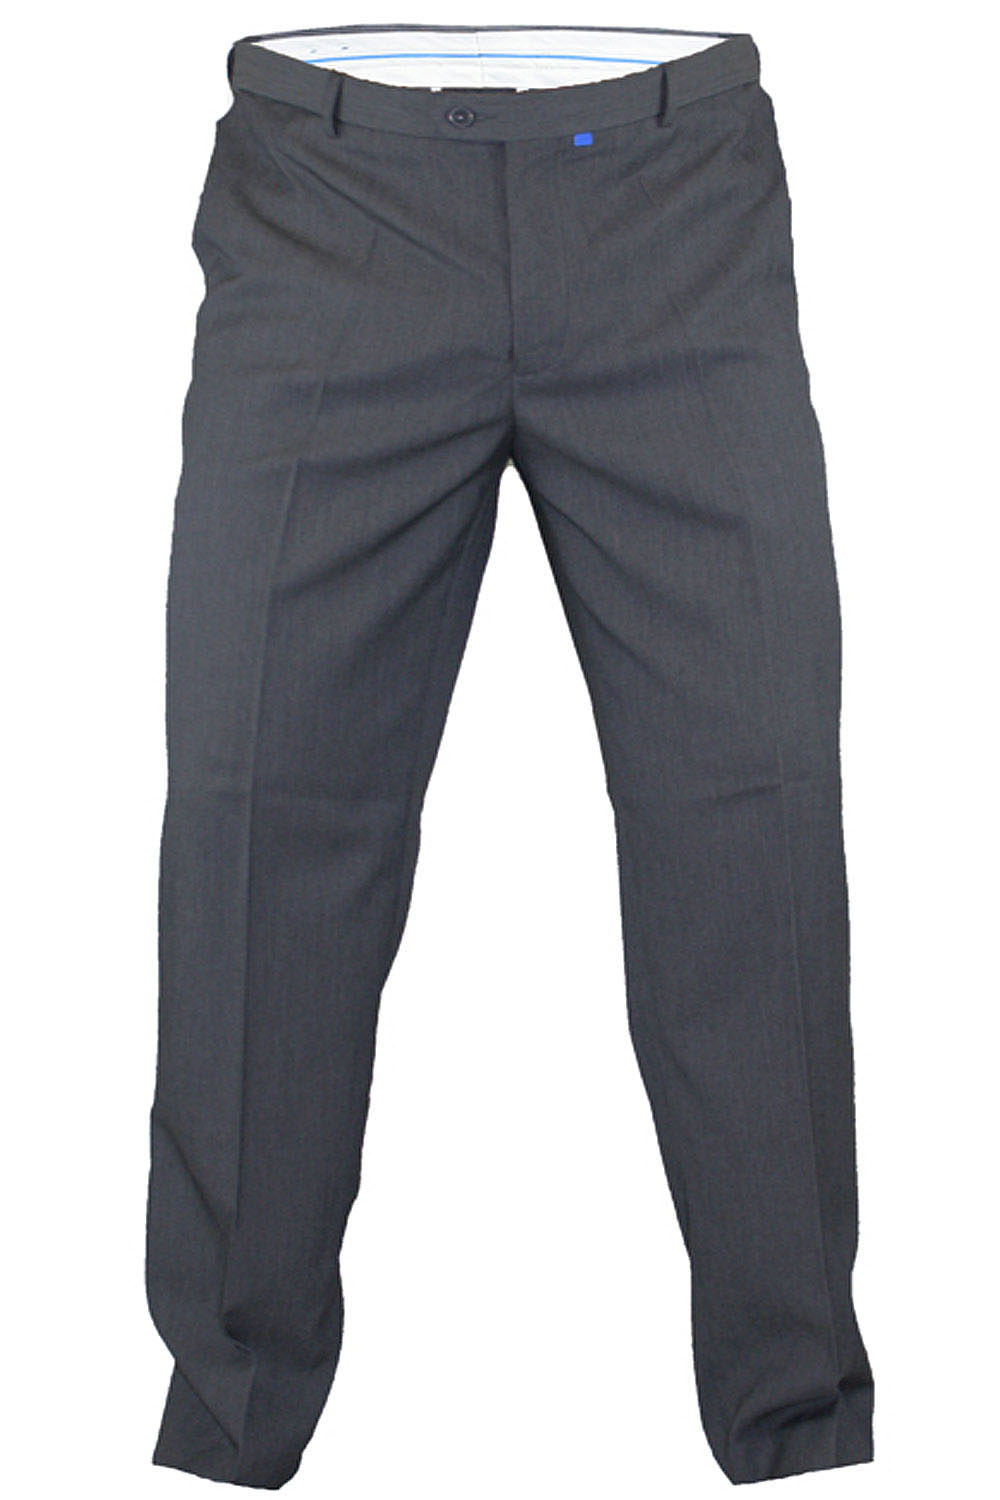 Official Site Sale Online Buy Online Cheap Price TROUSERS - Casual trousers Dukes Footlocker Cheap Sale Hot Sale gaQ04